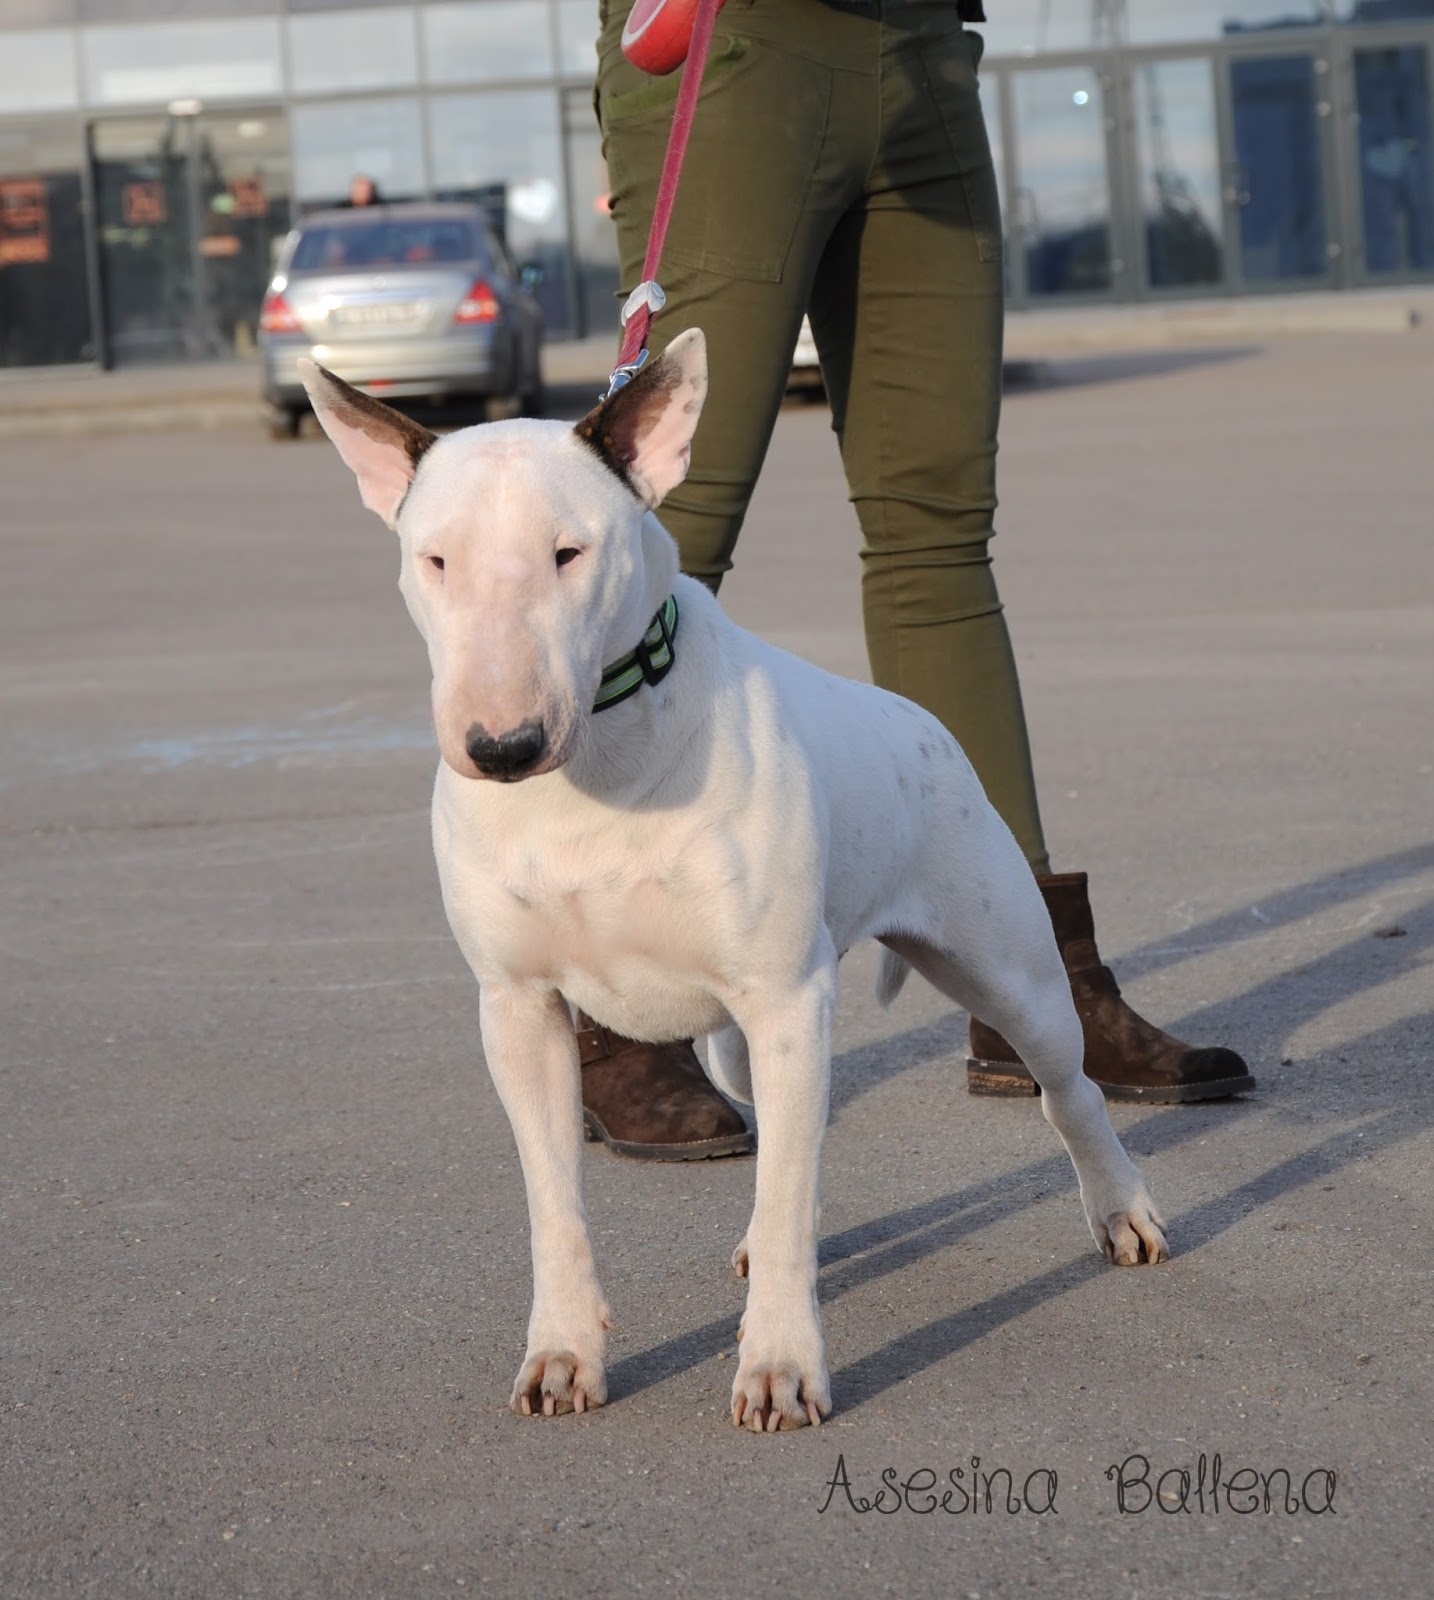 Daenerys Dastin Heart, ebt, english bull terrier, bullterrier, terrier, bullie, dog, female, white bullterrier, бультерьер, английский, стандартный, буль, белый